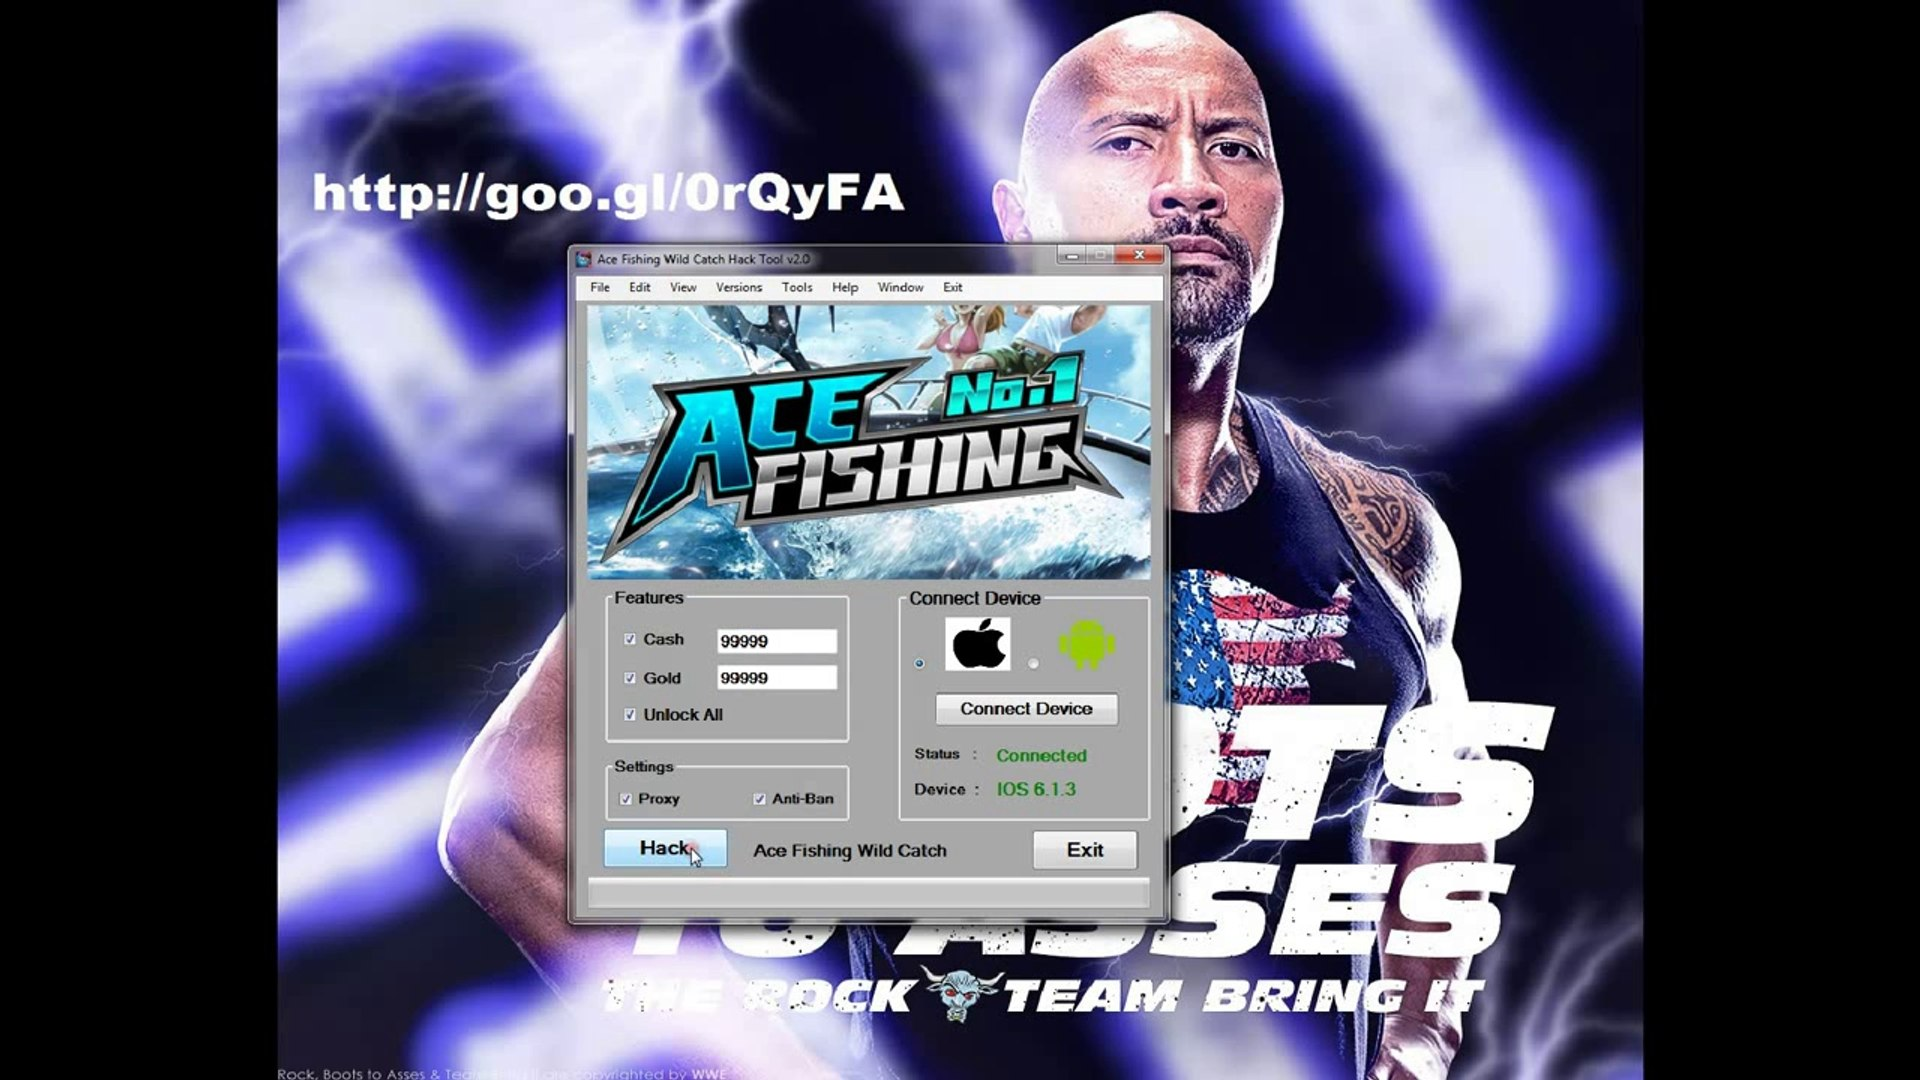 Ace Fishing Wild Catch Hack for IOS & ANDROID 9999 Cash & Gold v2.0 Ace Fishing Wild Catch H